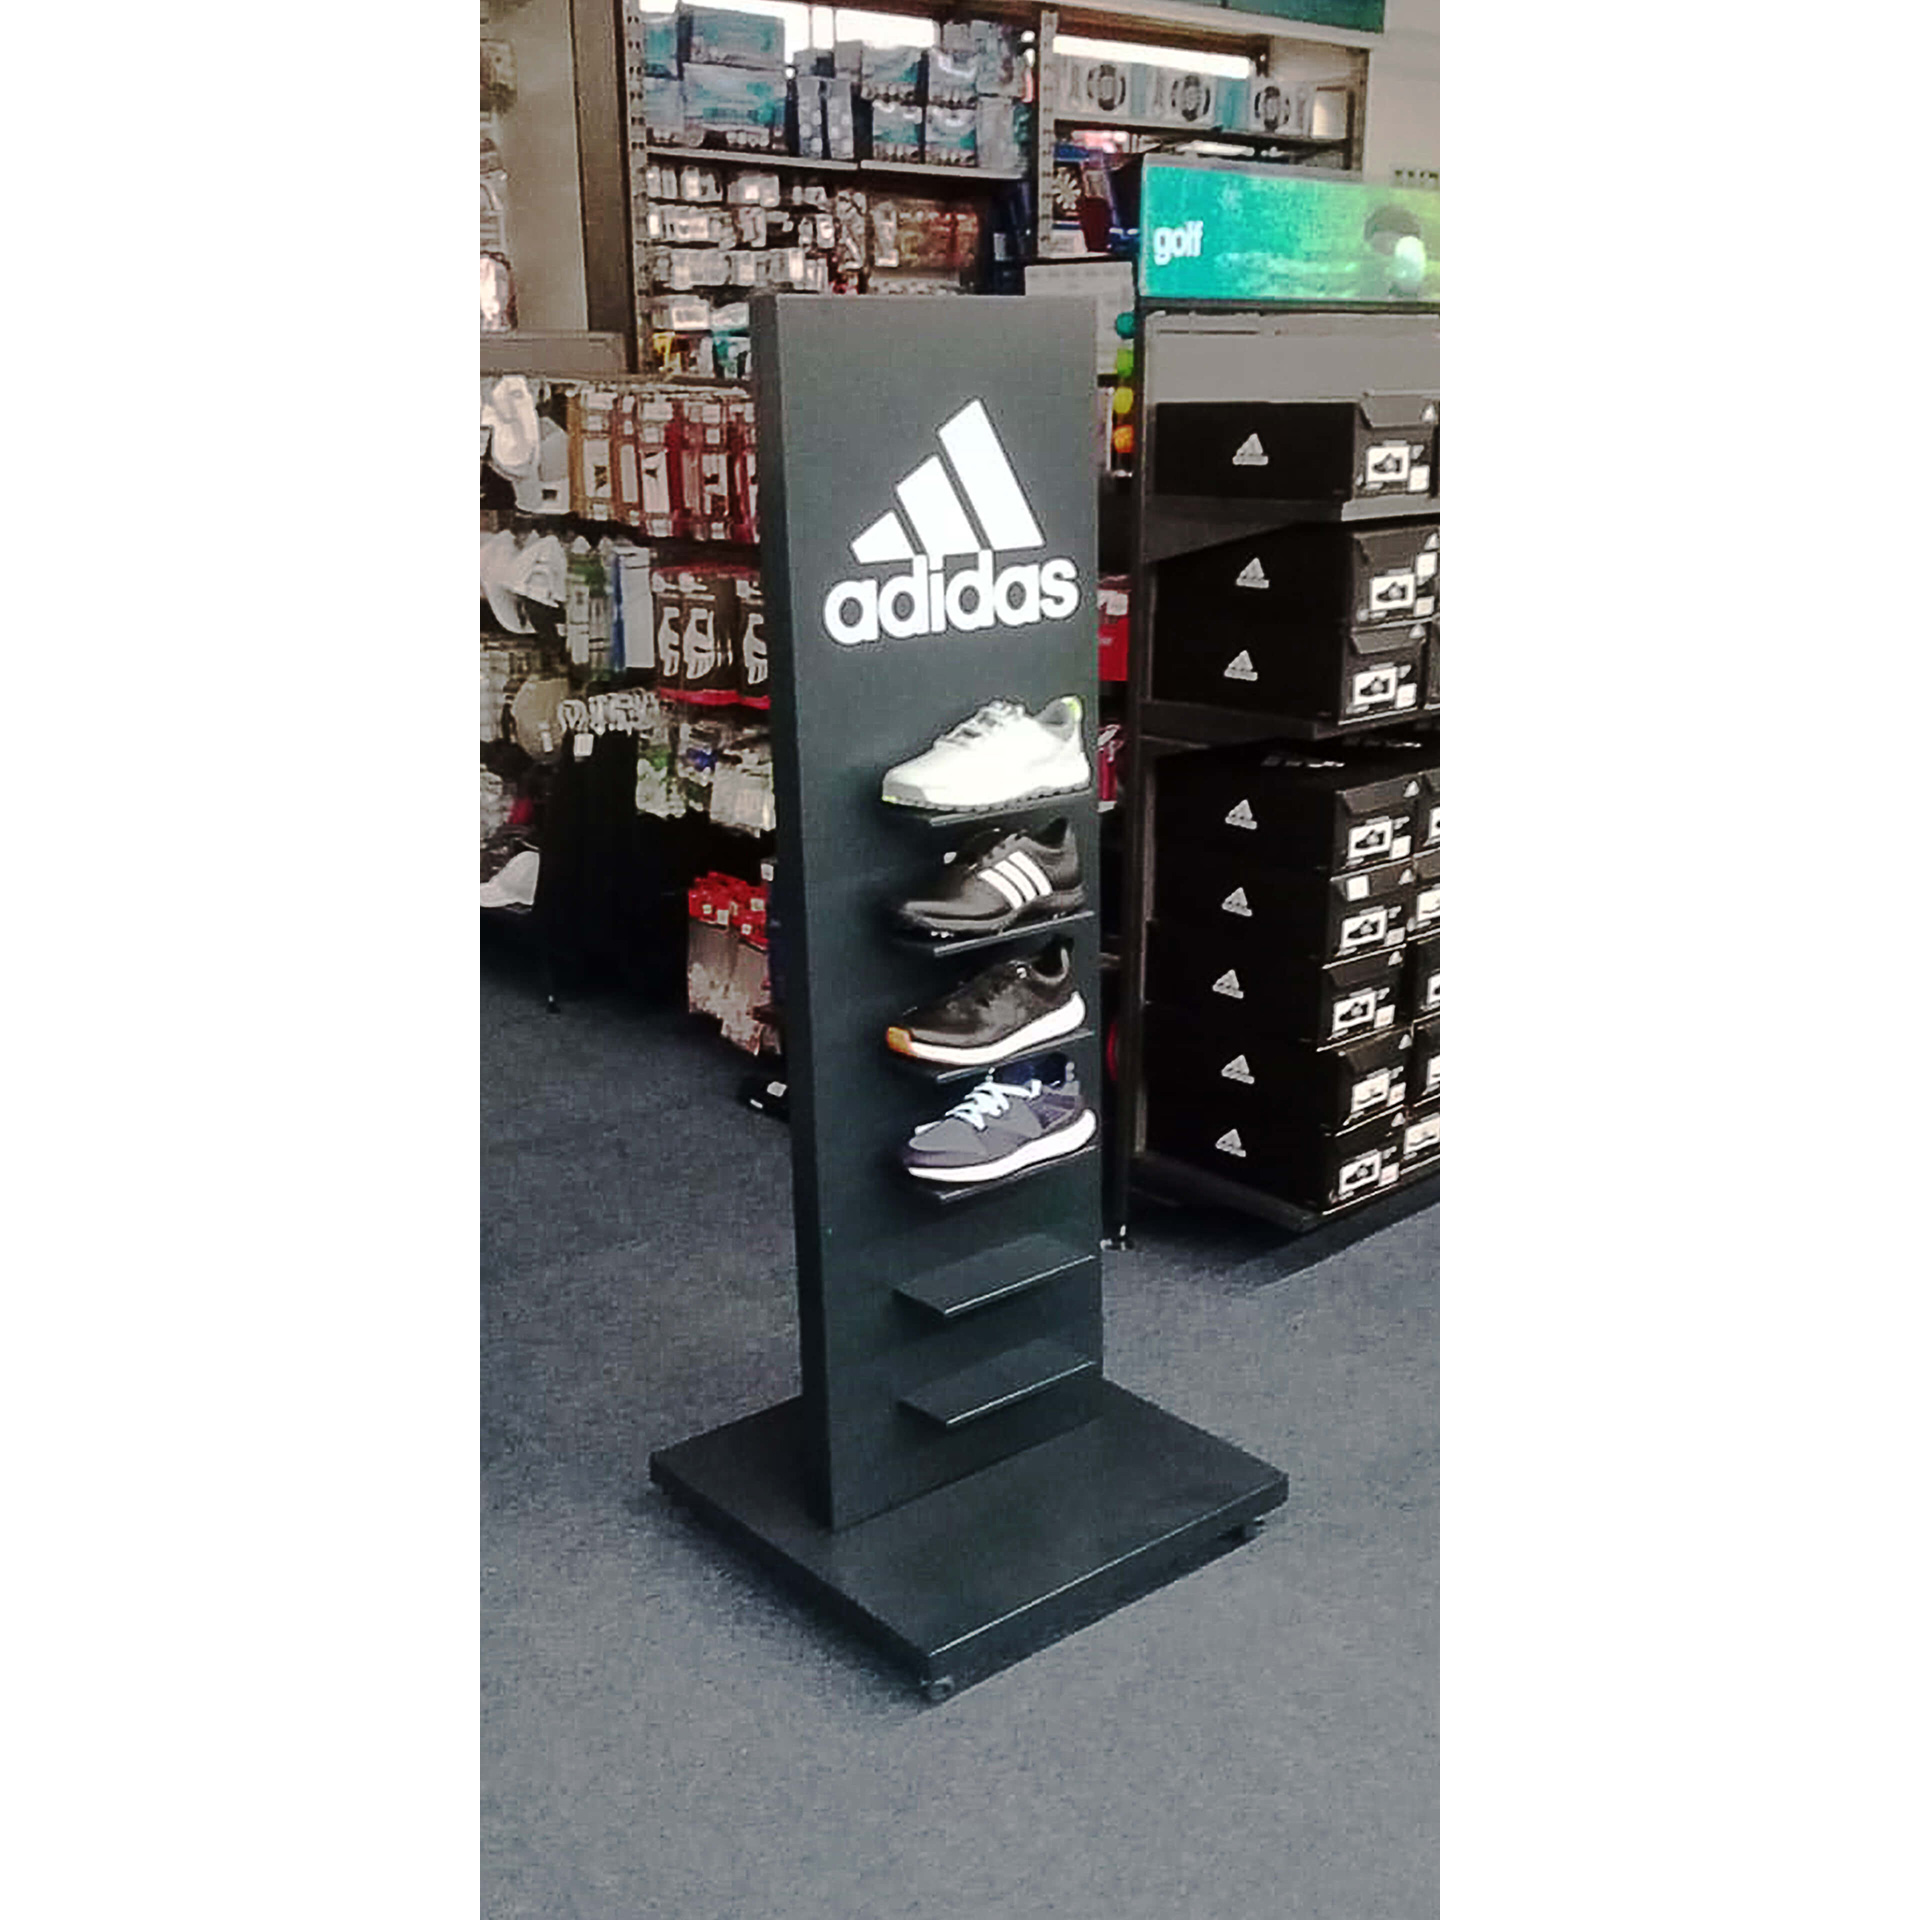 Adidas Footware Stand In Store 2 small